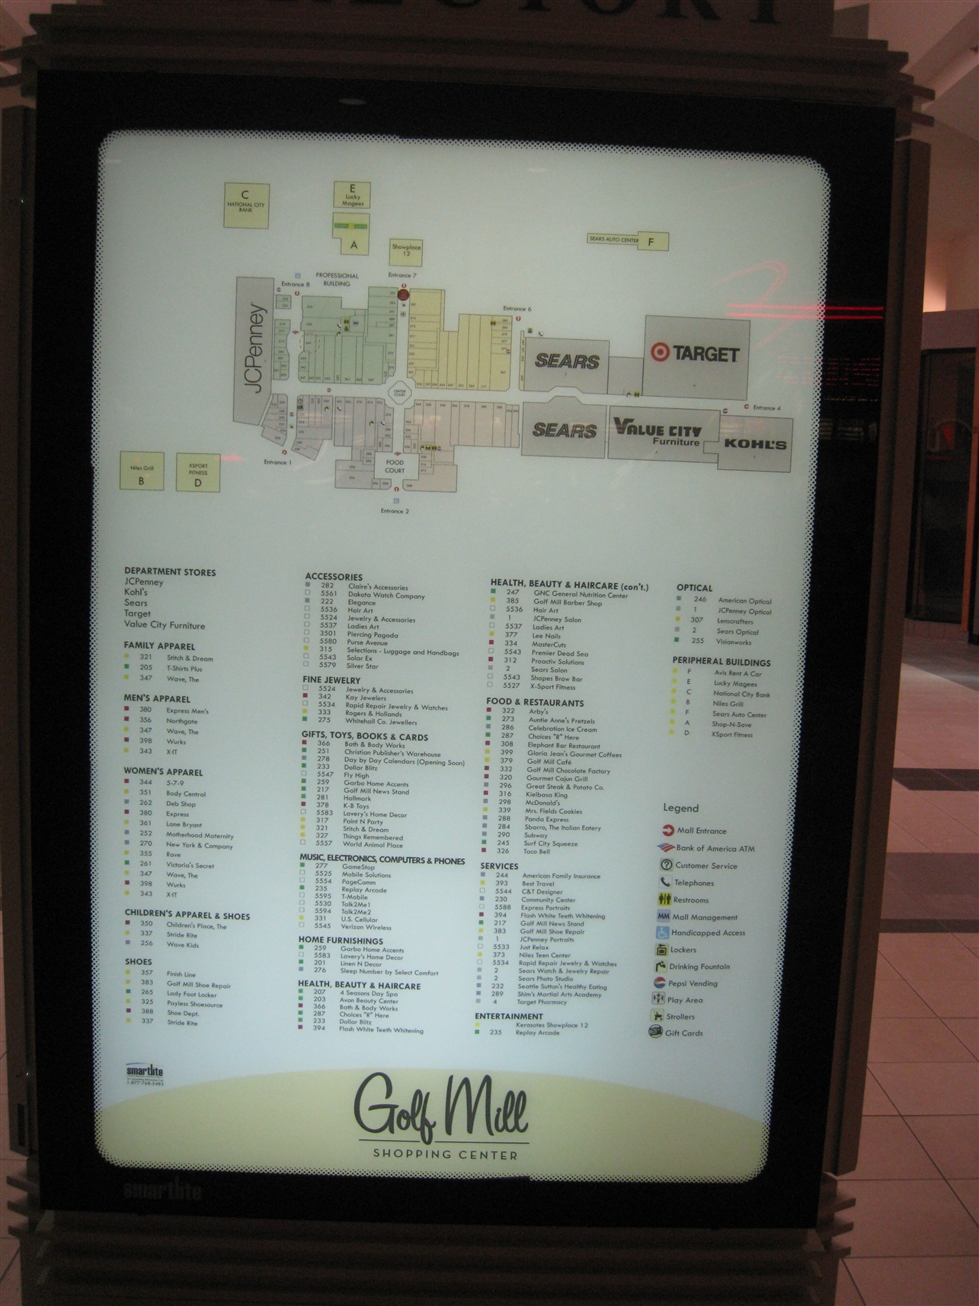 Golf Mill Shopping Center directory in Niles, IL